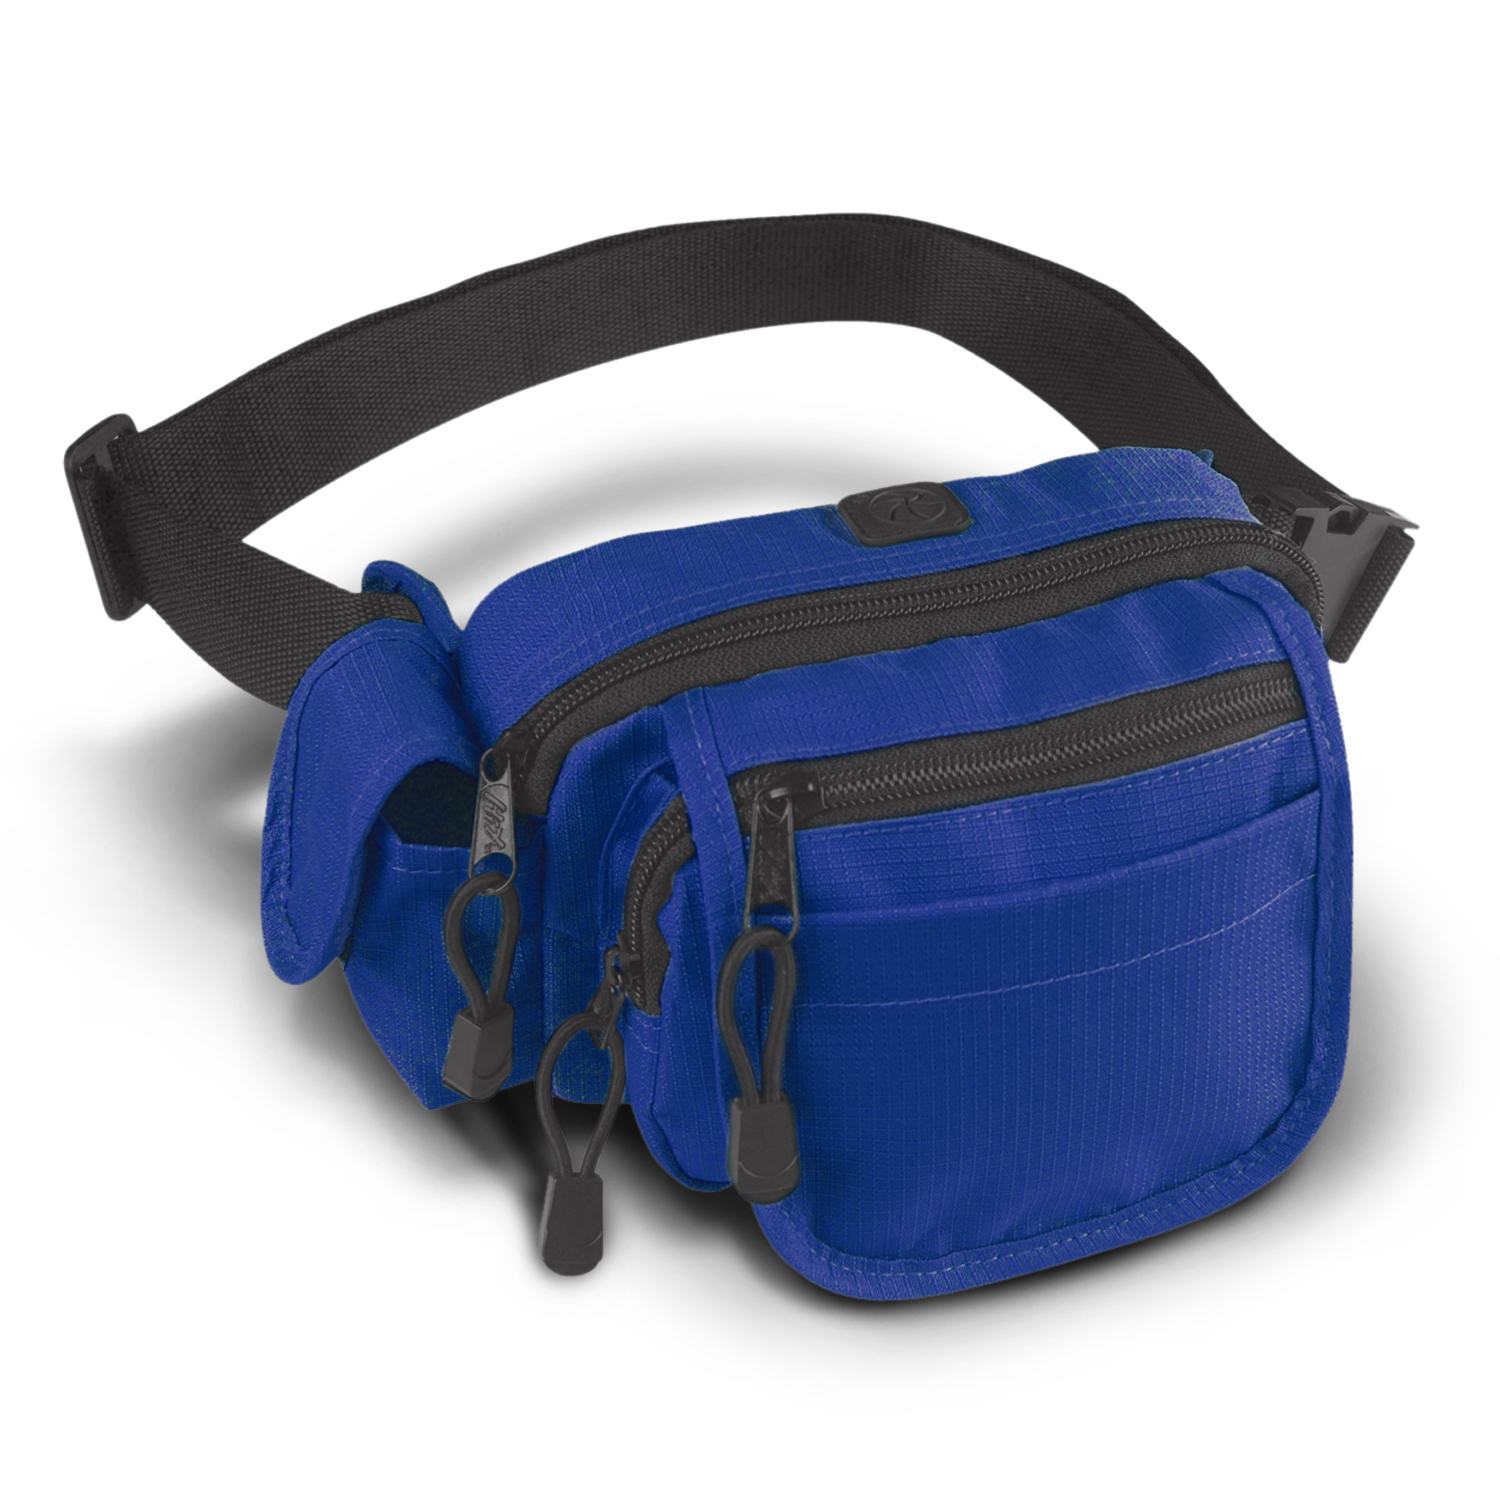 All-In-One Belt Bag